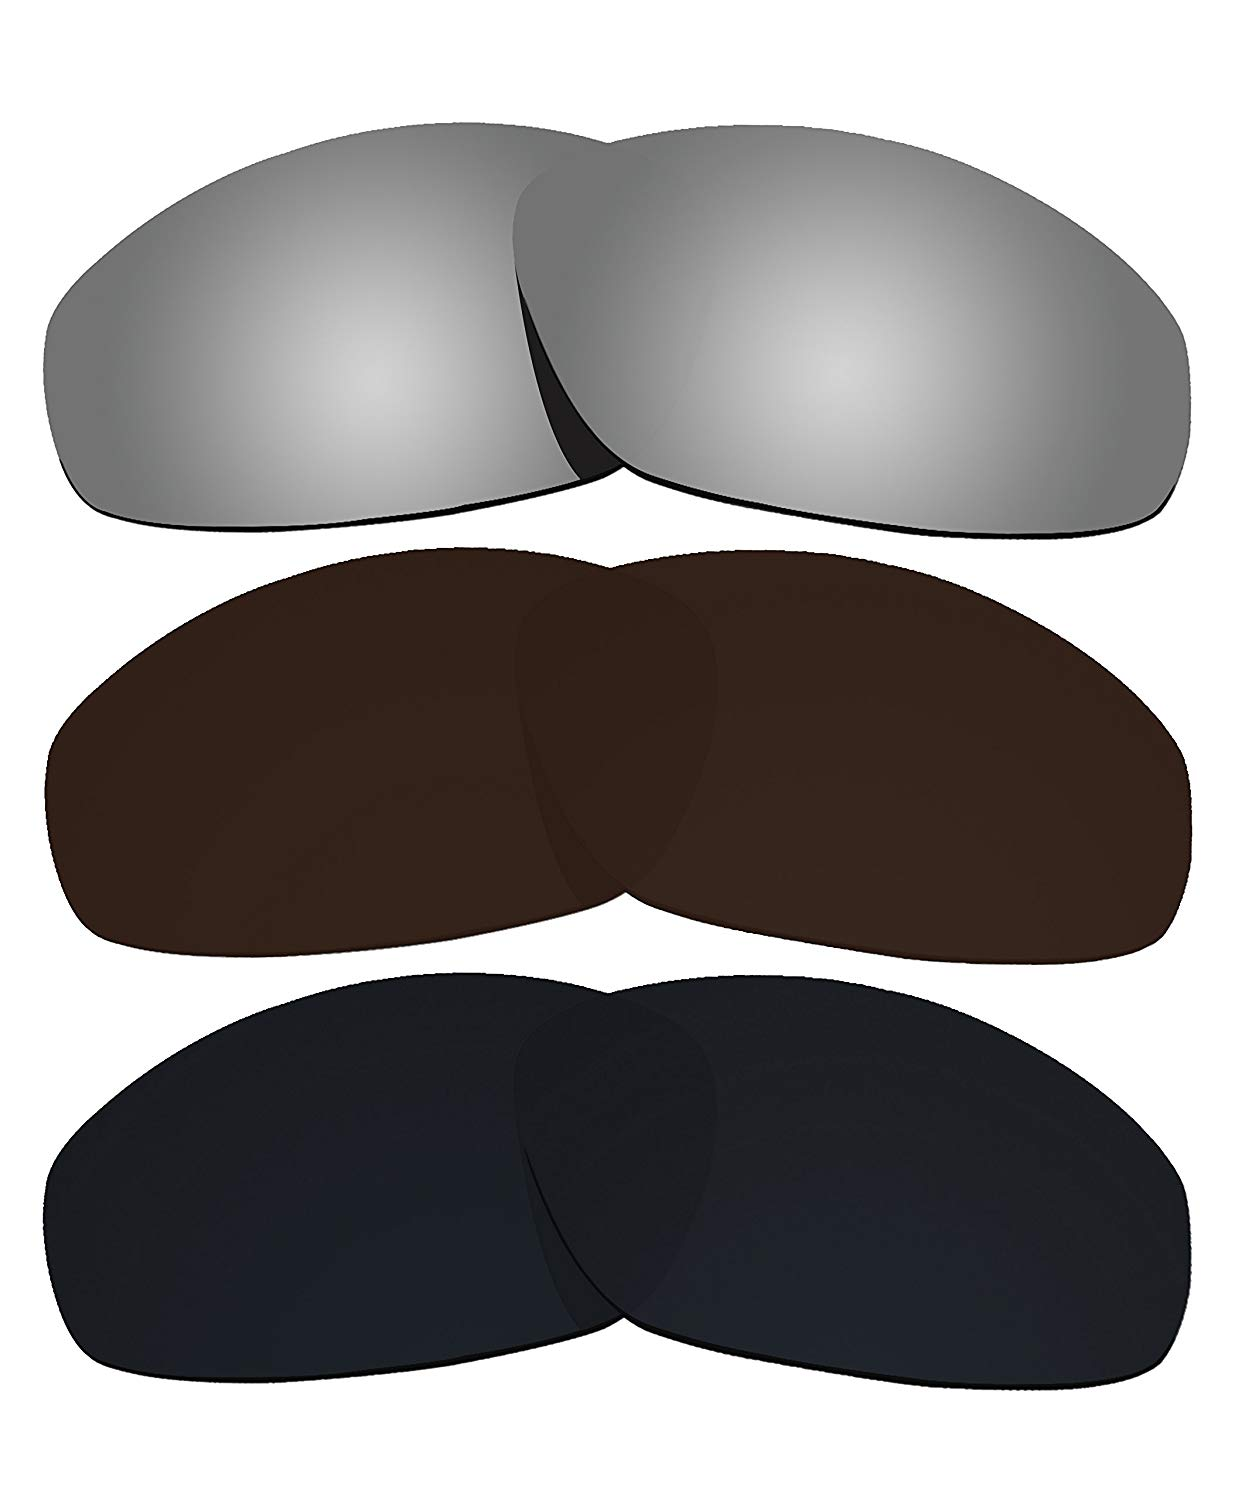 2de767a1ed Get Quotations · 3 Pairs COLOR STAY LENSES 2.0mm Thickness Polarized  Replacement Lenses Brown   Black   Silver